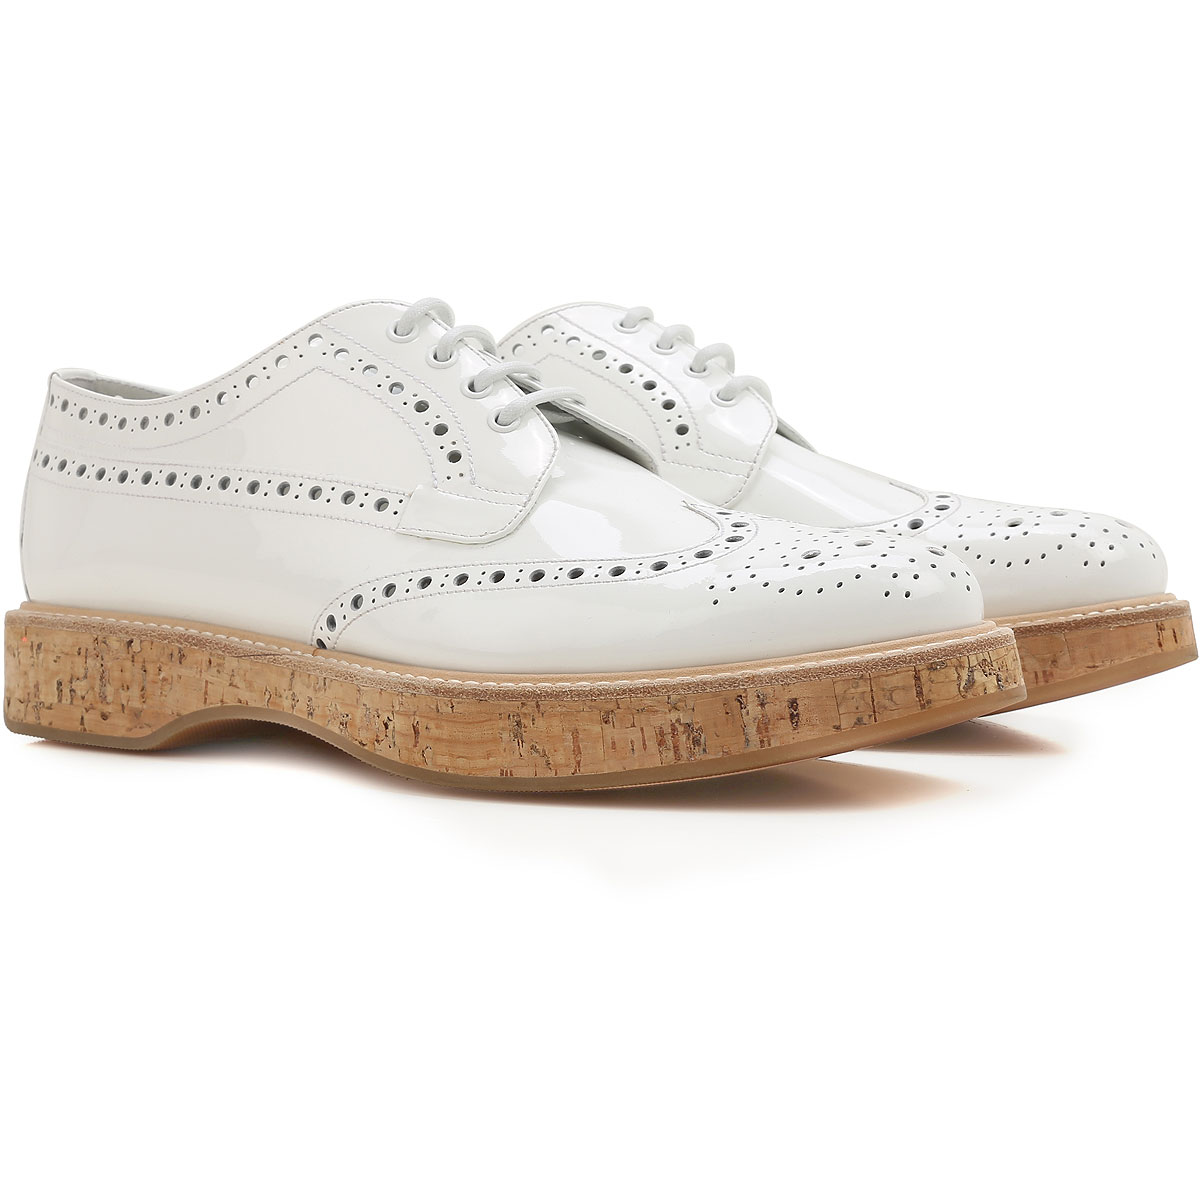 Church's Oxford Lace up Shoes for Women in Outlet White USA - GOOFASH